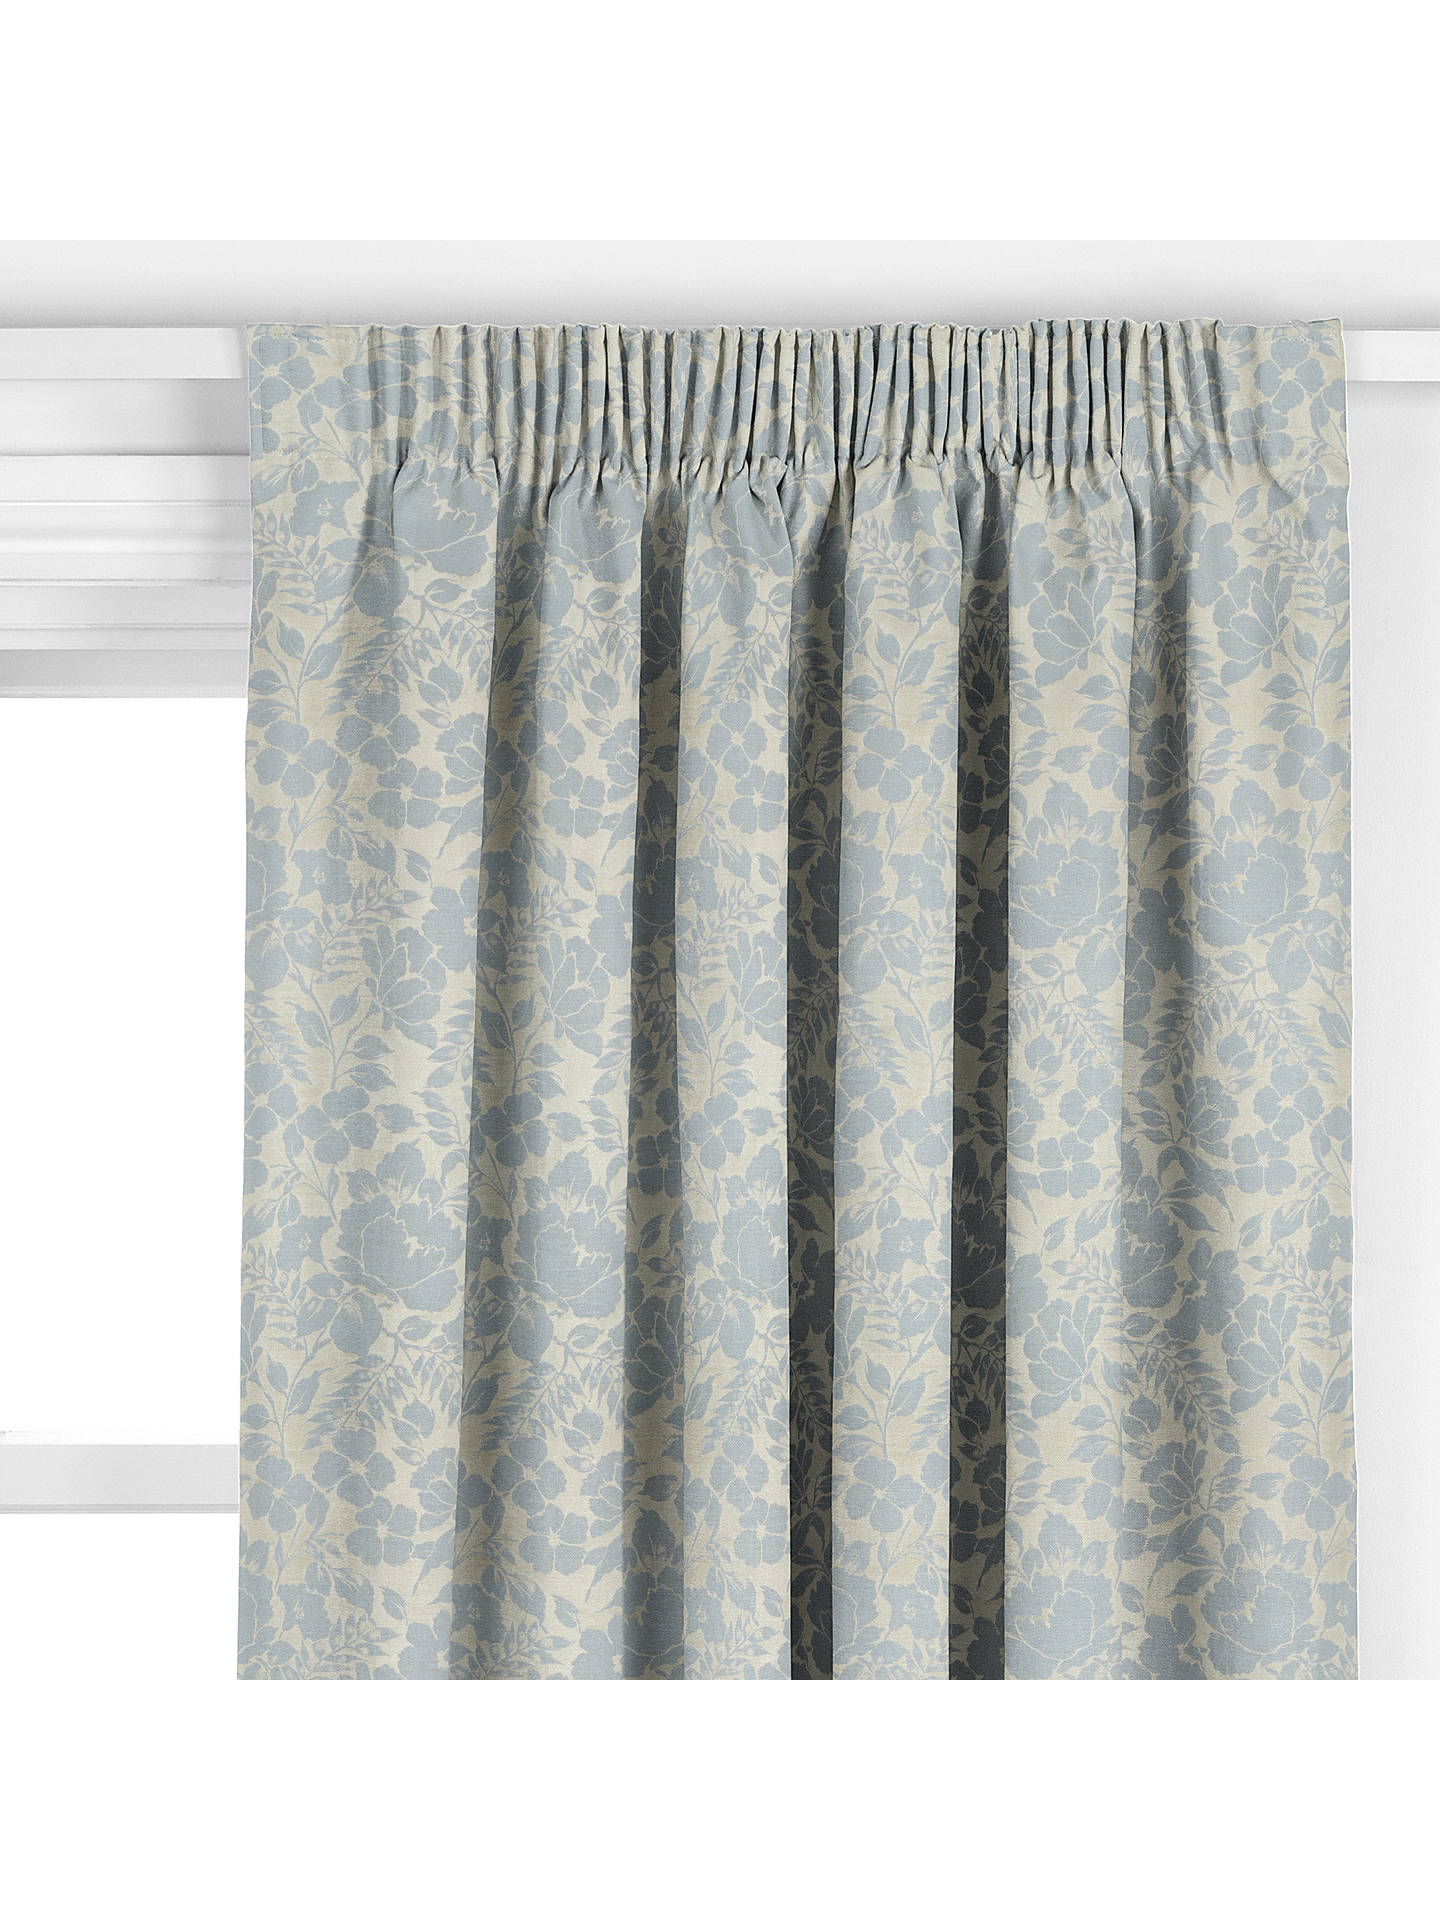 John Lewis Amp Partners Wild Woven Floral Garden Made To